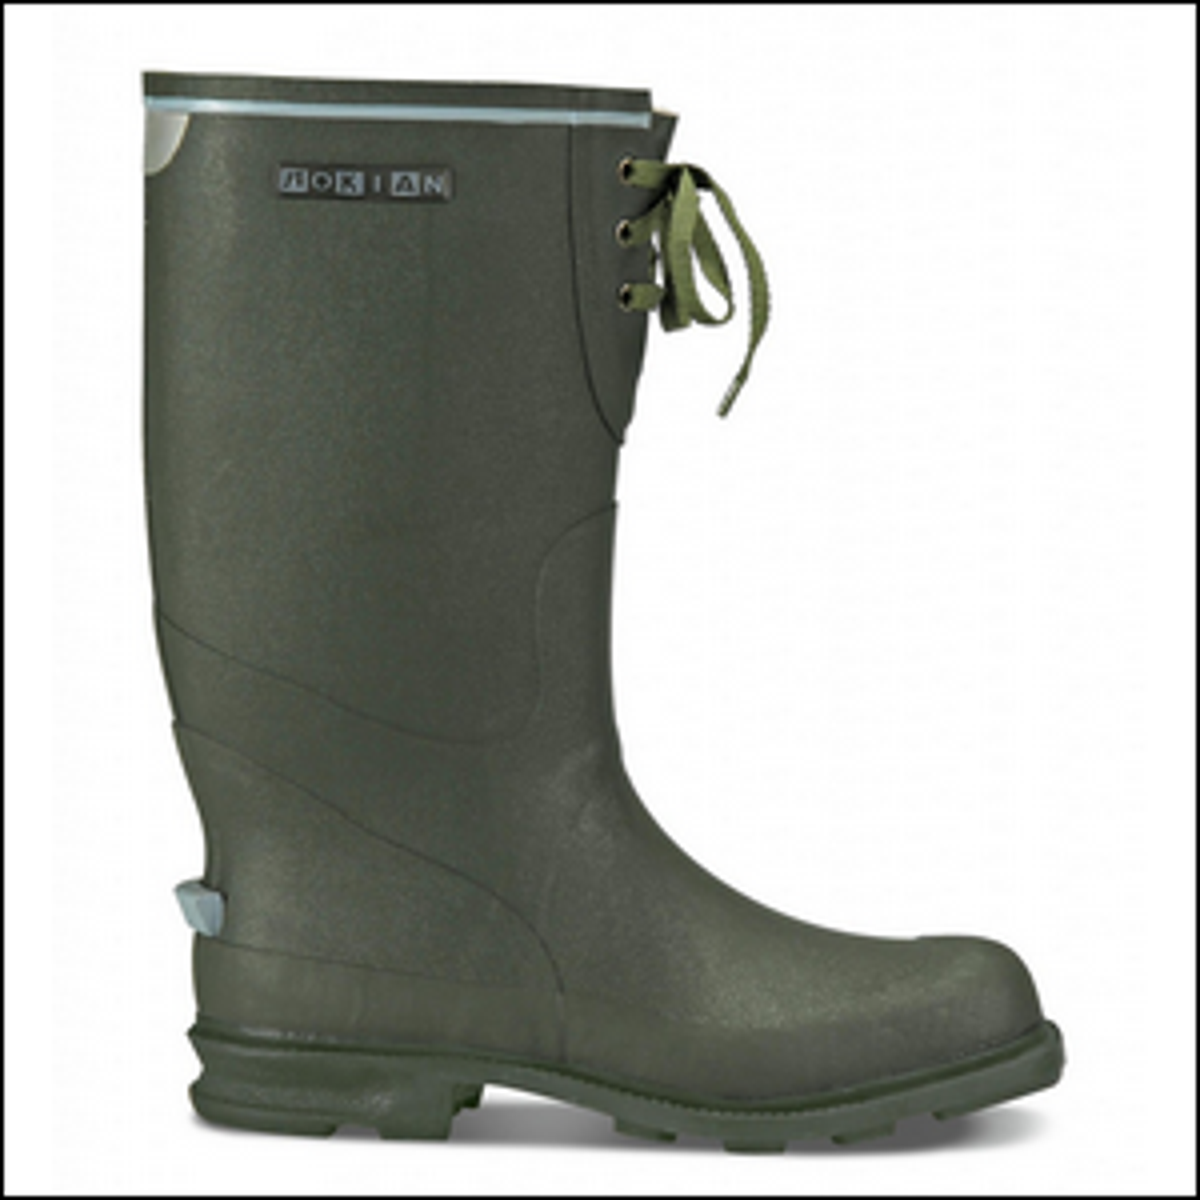 An example of Nokian rubber boots.